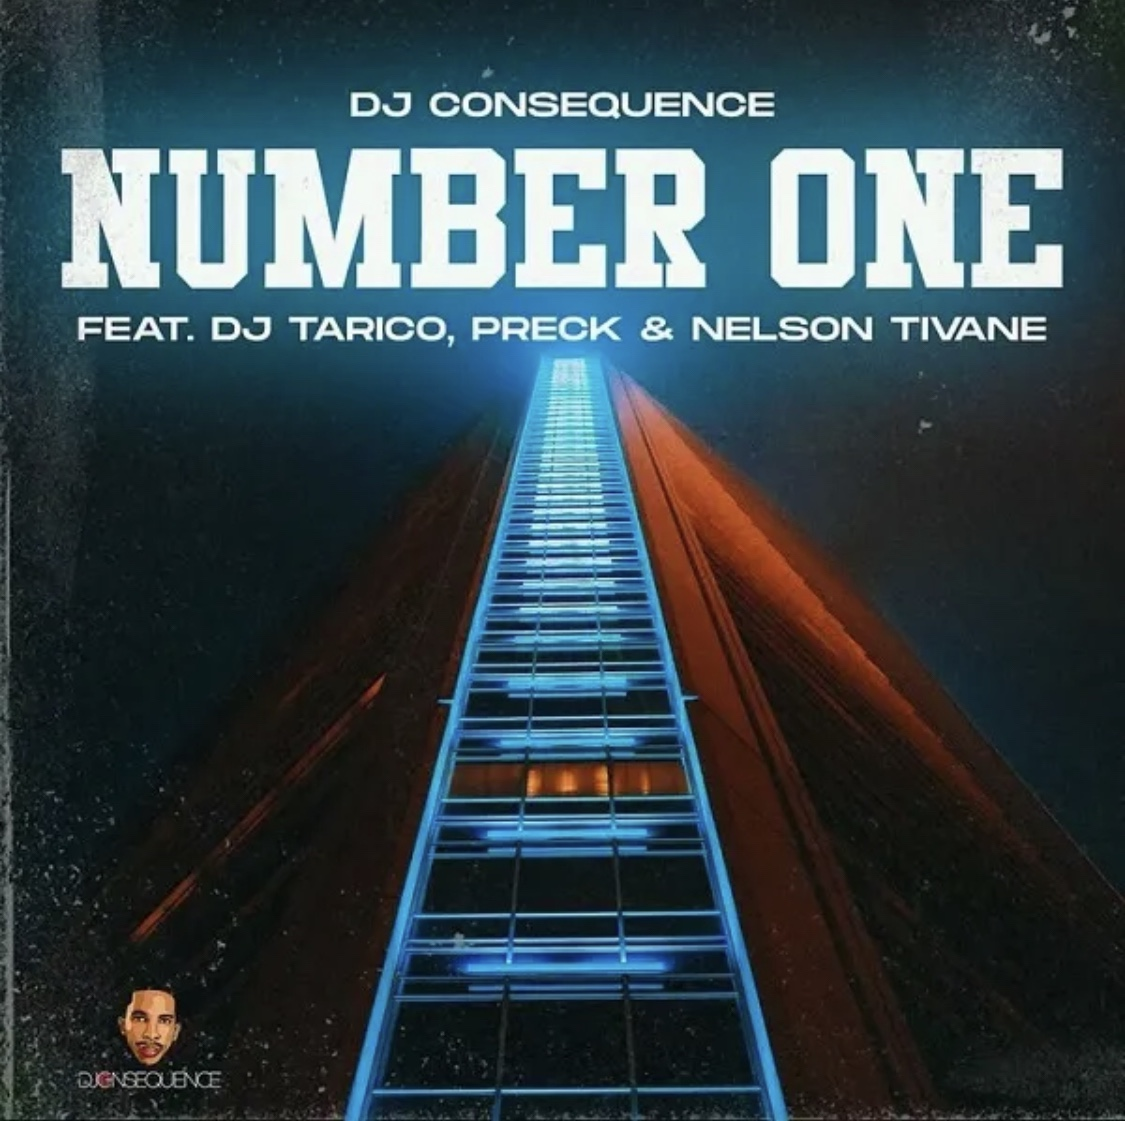 DJ Consequence Ft. DJ Tarico, Preck & Nelson Tivane - Number One